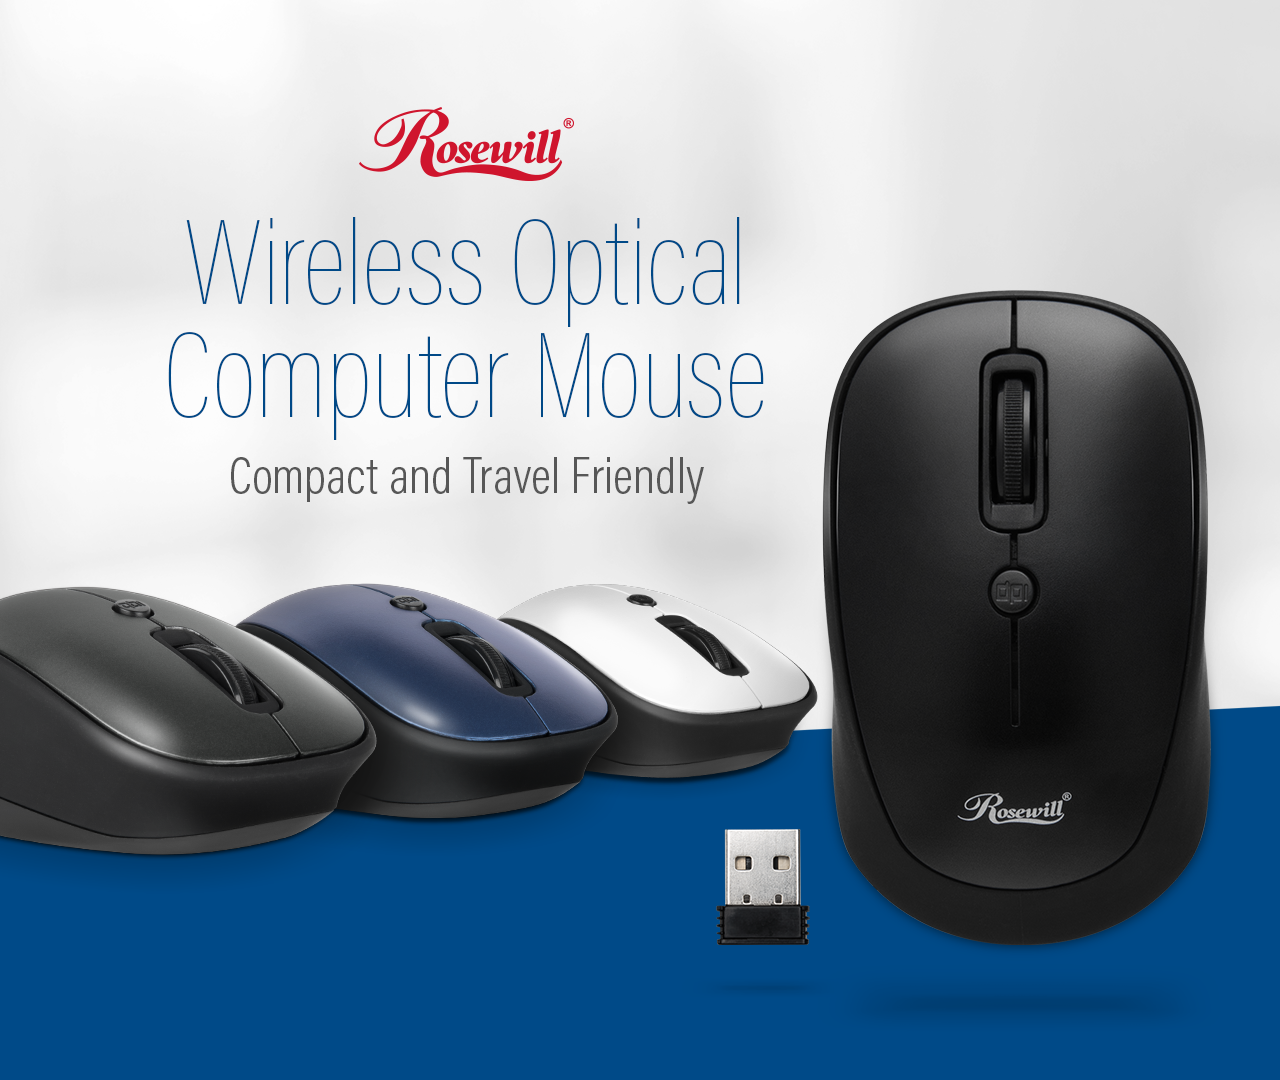 Rosewill Wireless Optical Computer Mouse banner showing the black, blue and white models, lying flat angled to the right and a black model facing up next to its USB receiver. There is also text that reads: Wireless Optical Computer Mouse - Compact and Travel Friendly